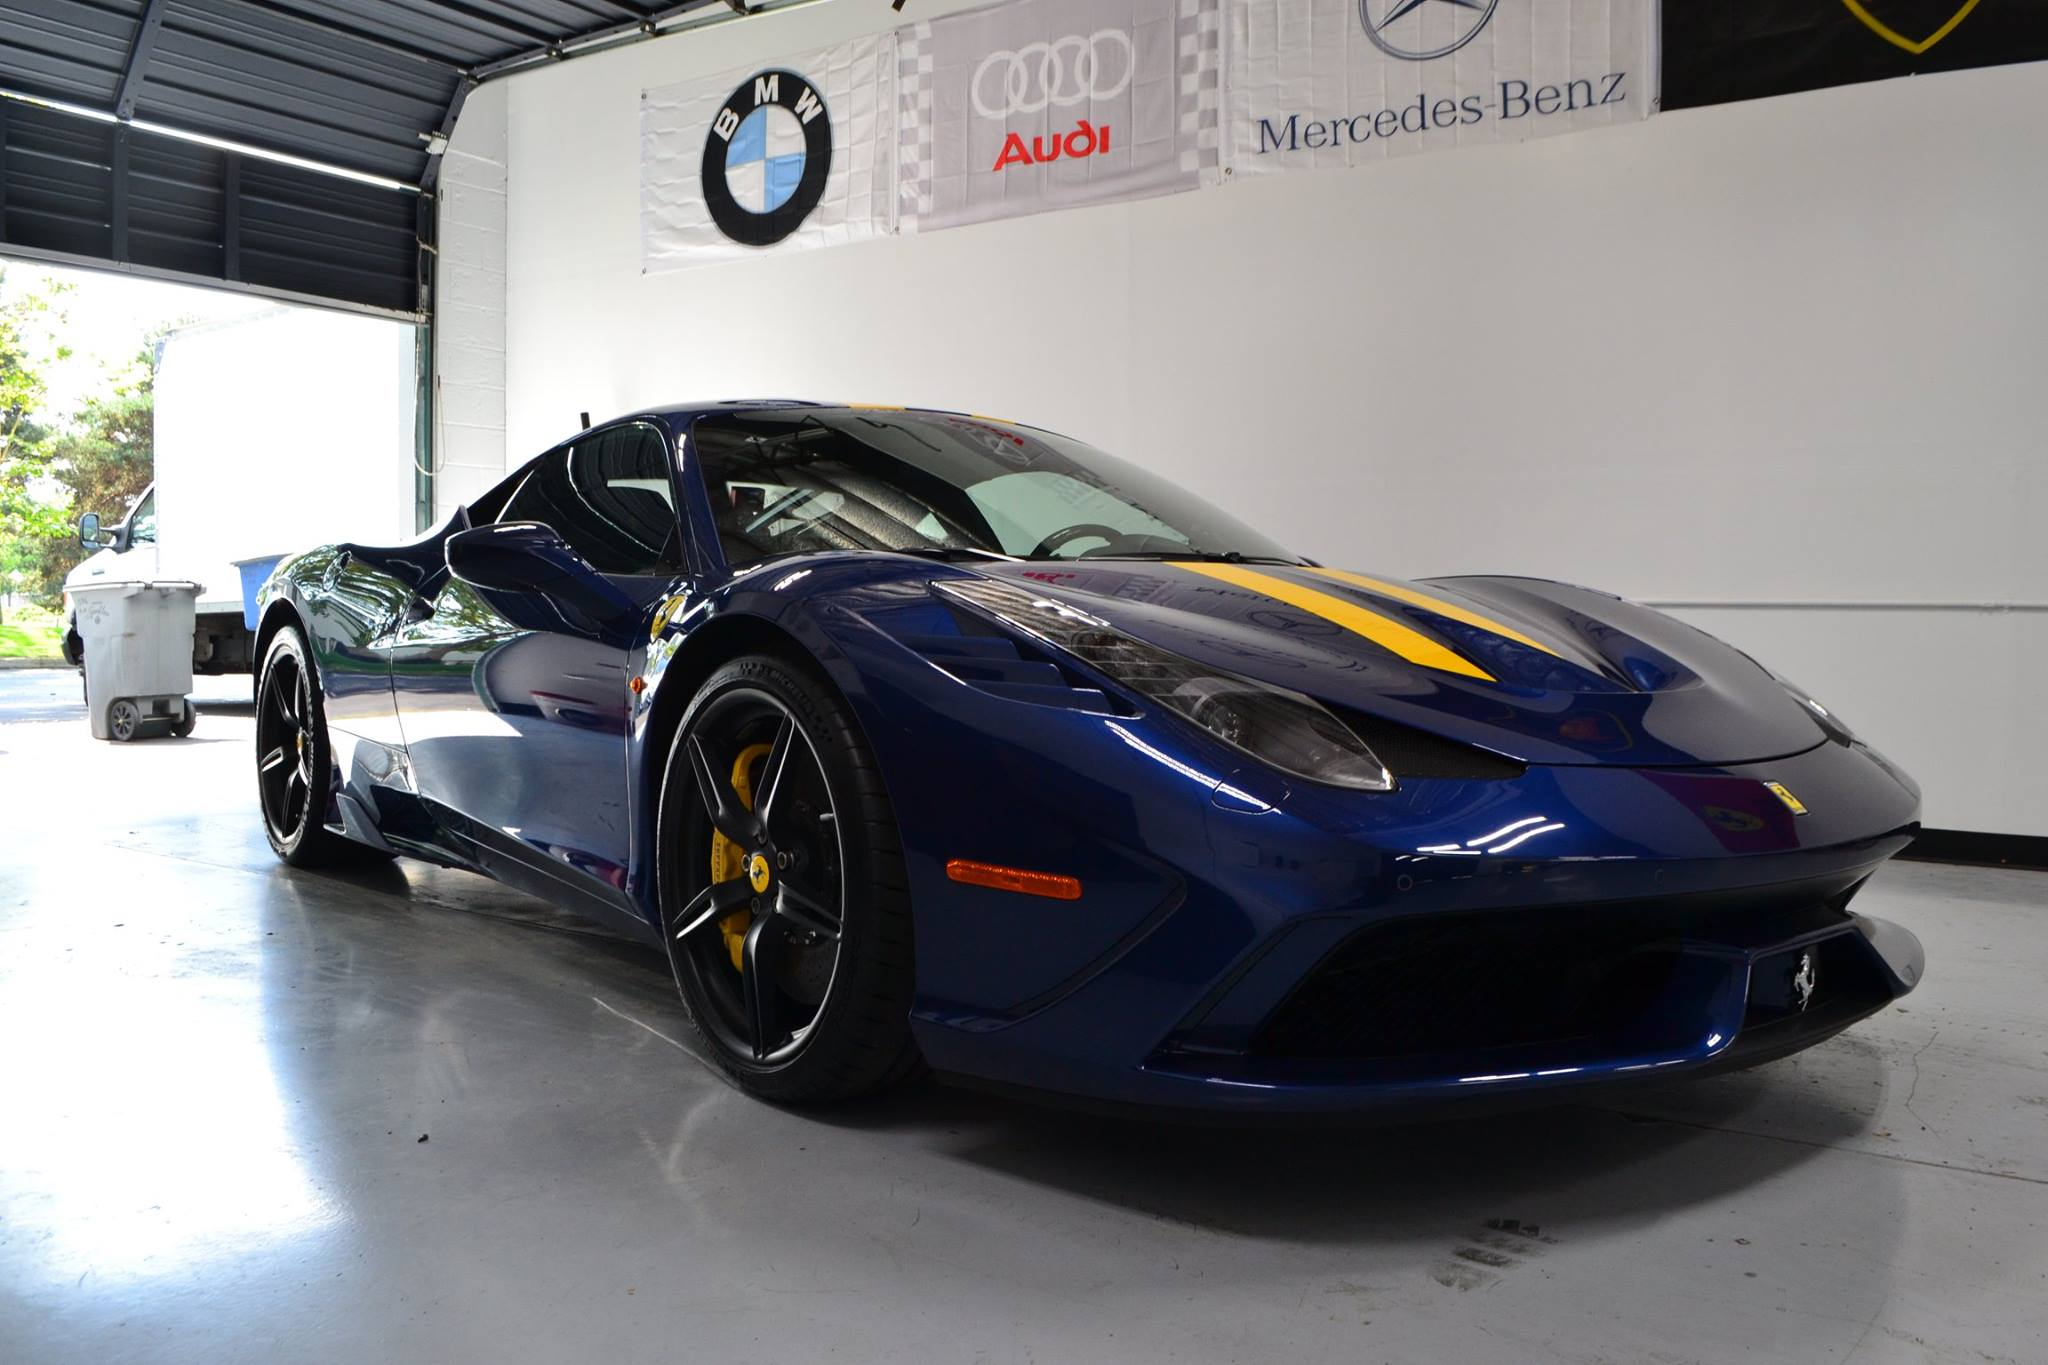 Ferrari 458 Speciale Attention 2 Detail Nw